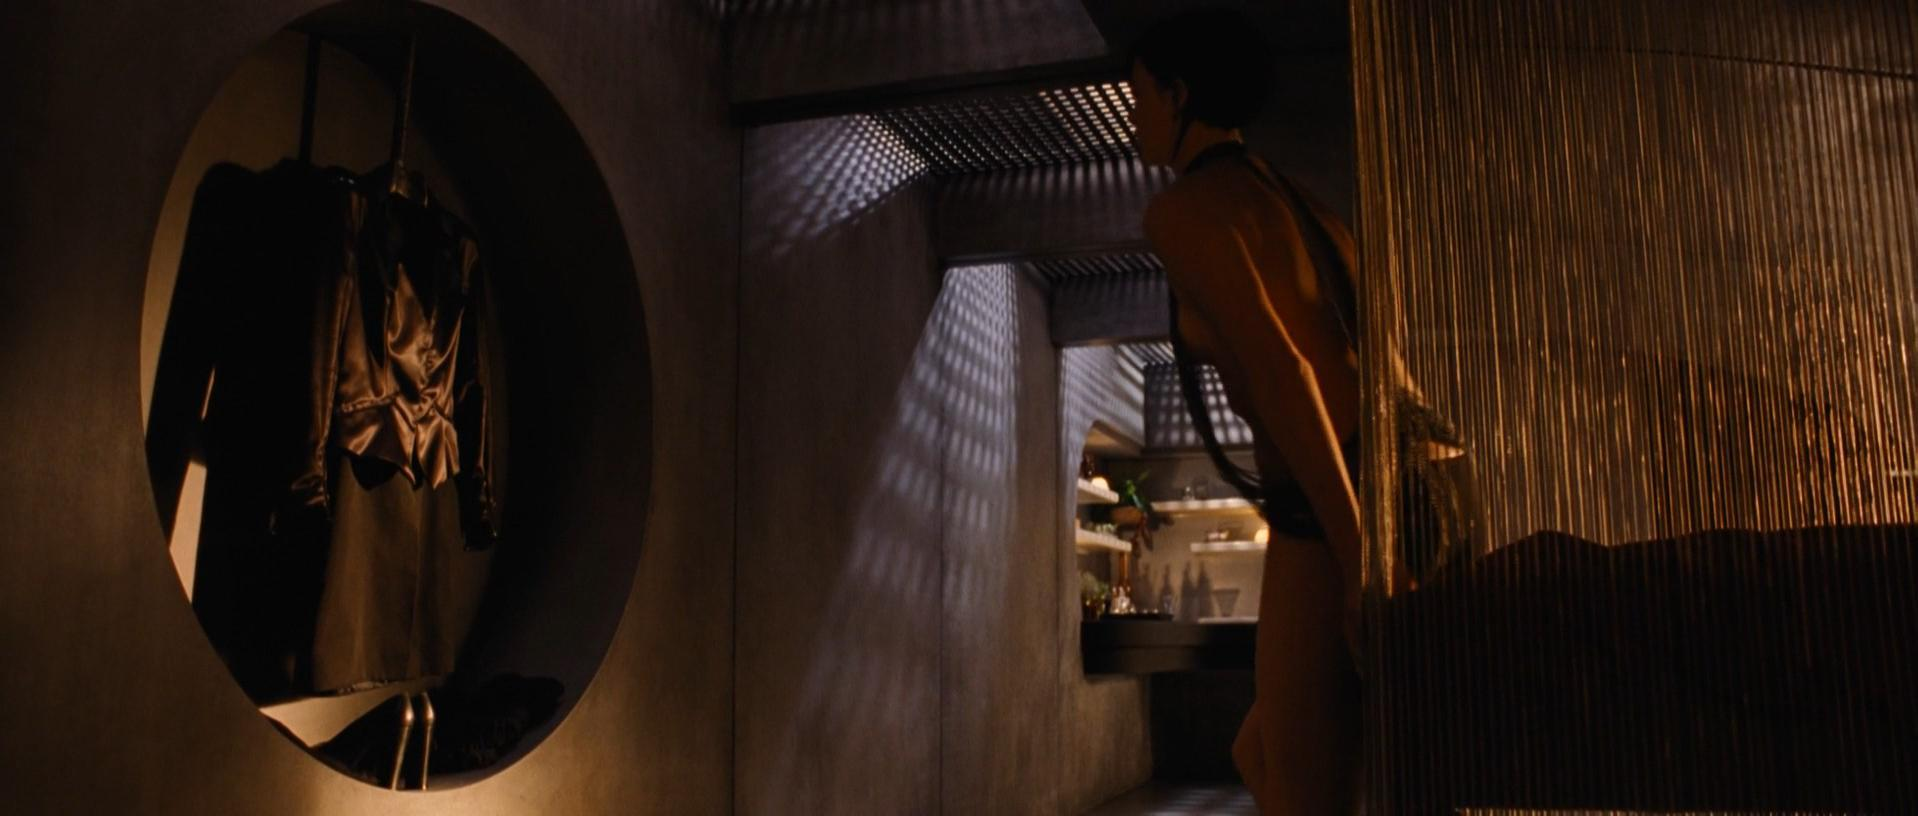 charlize-theron-aeon-flux-nude